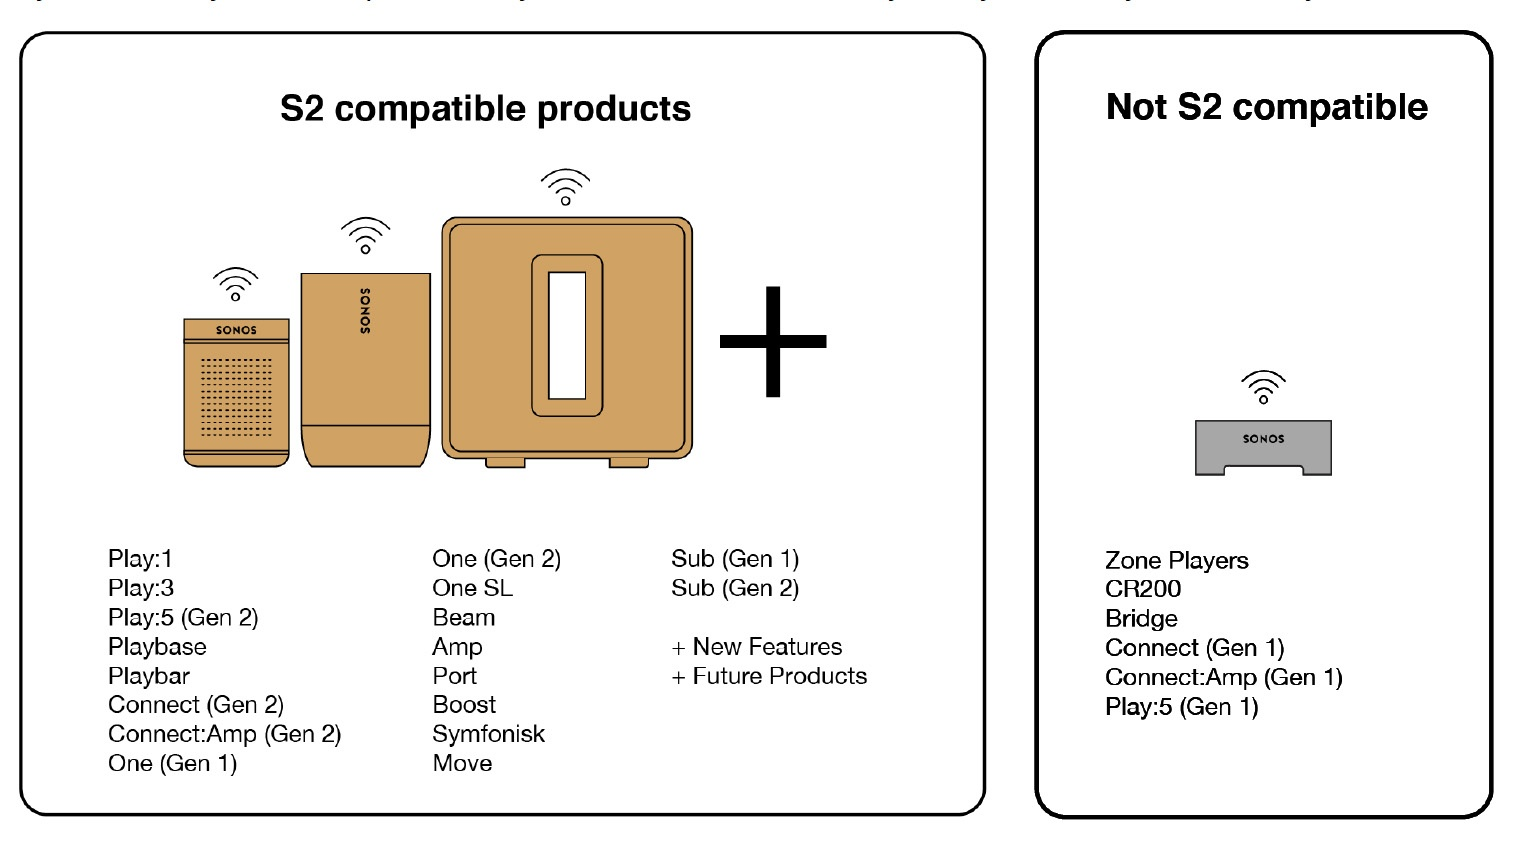 Sonos S2 compatible products